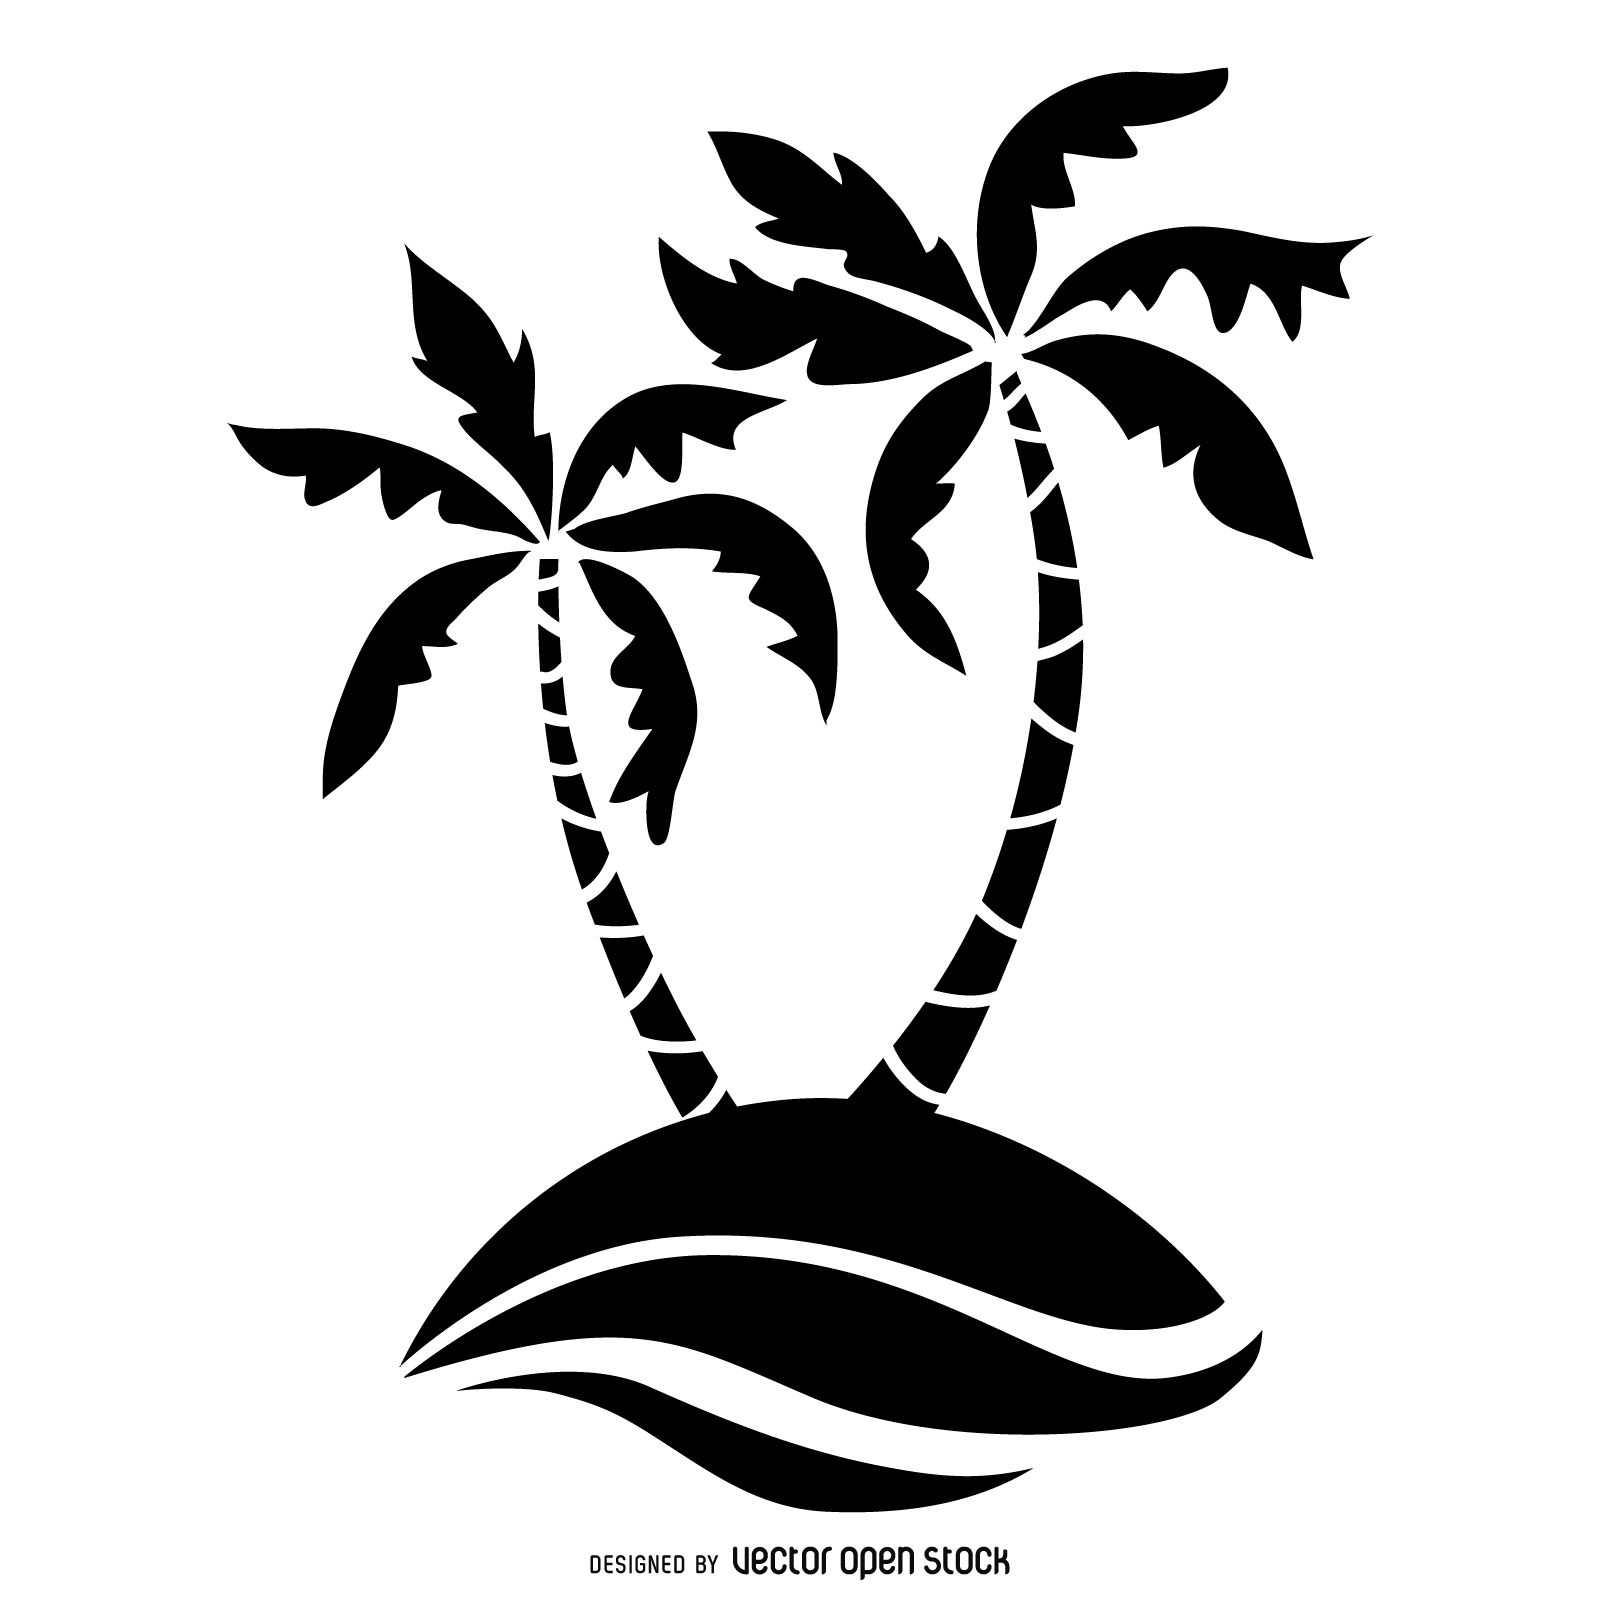 Flat Illustrated Palm Trees In Black Over White